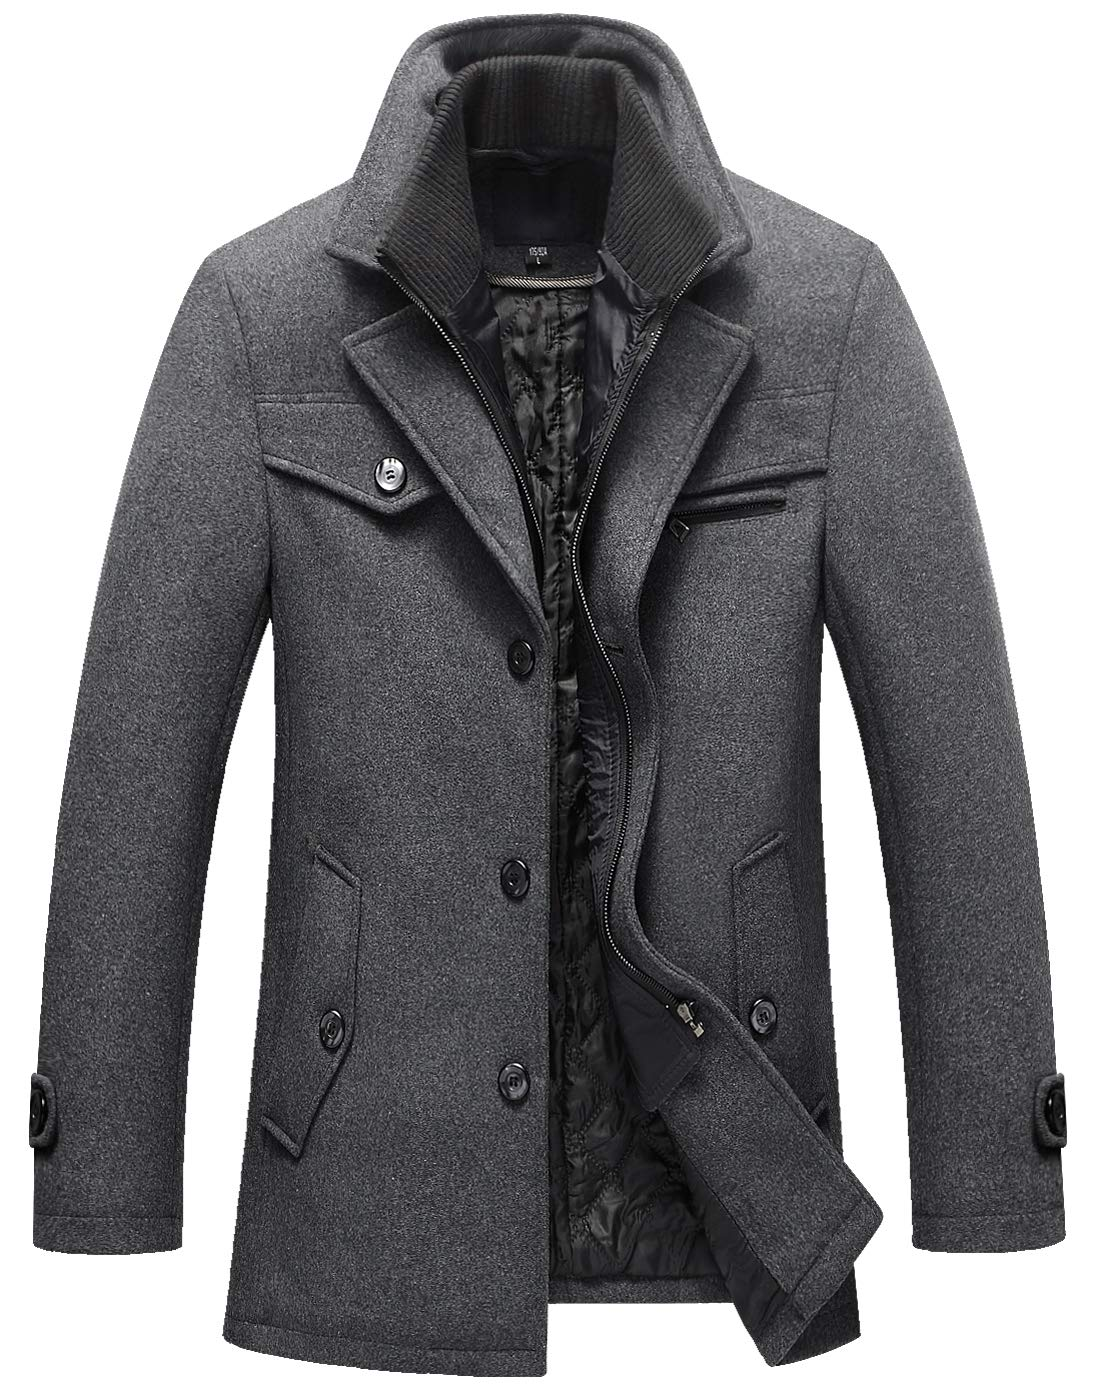 chouyatou Men's Gentle Layered Collar Single Breasted Quilted Lined Wool Blend Pea Coats (Medium, Grey) by chouyatou